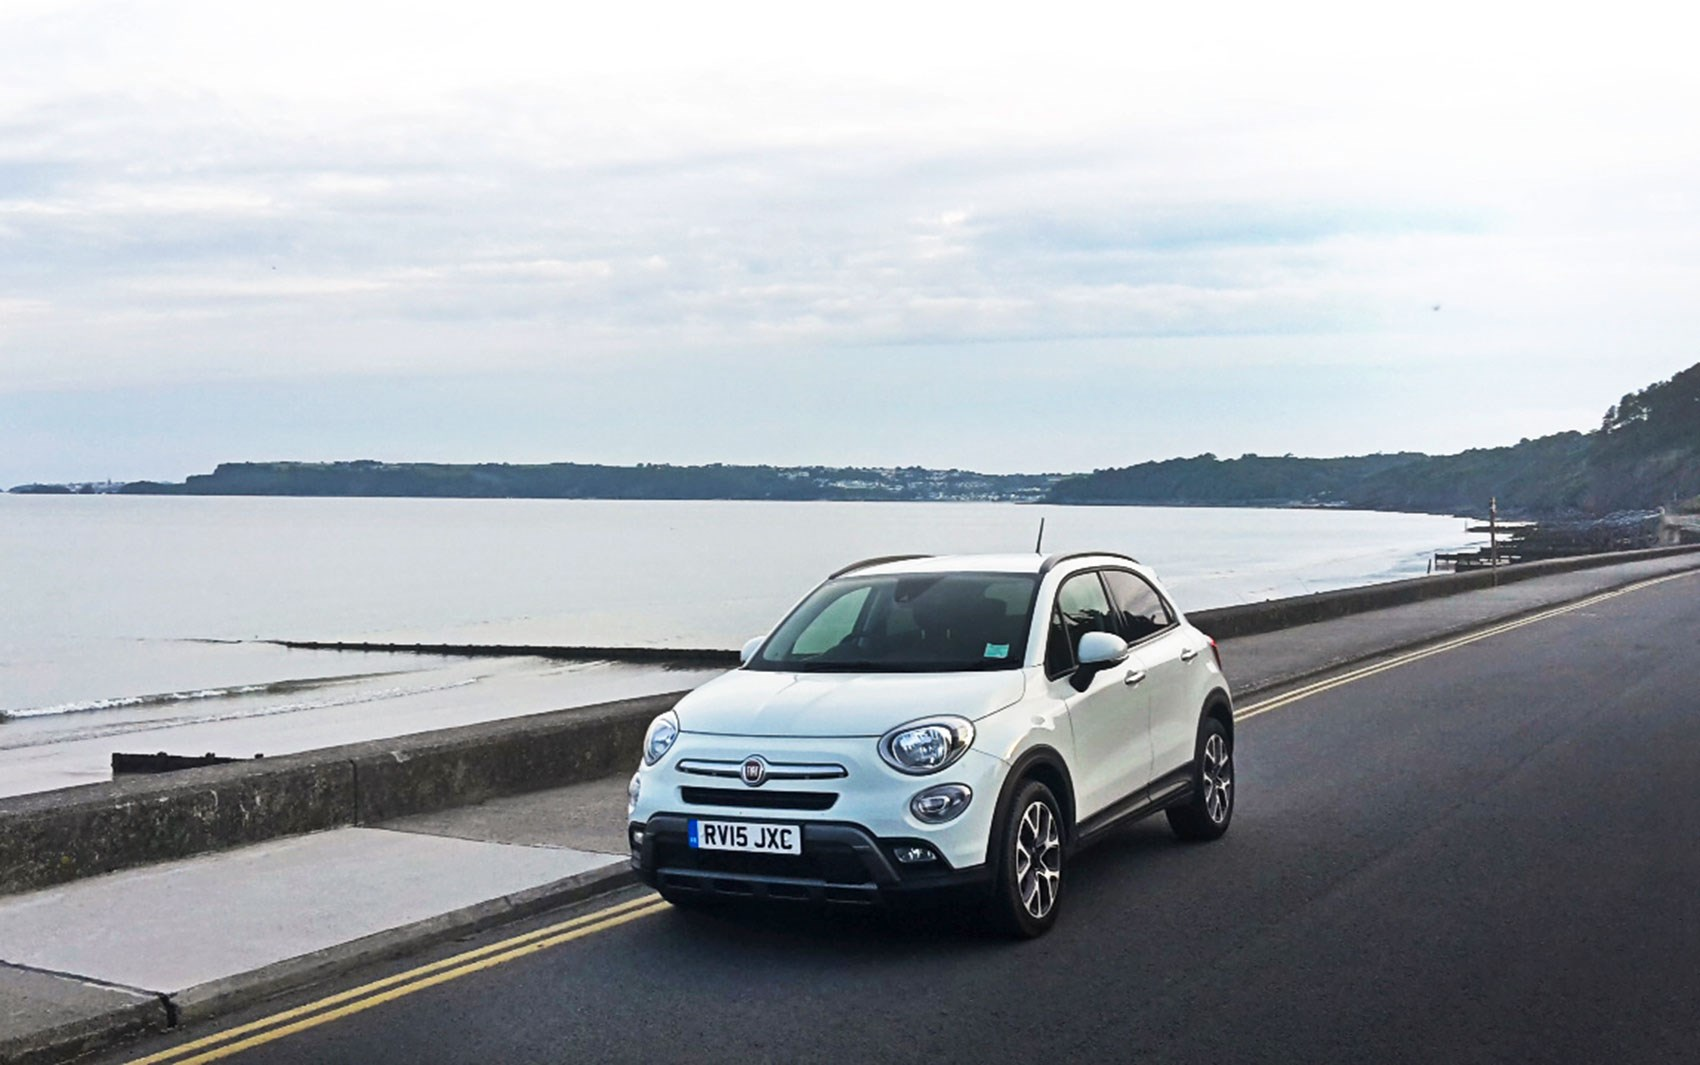 fiat 500x (2016) long-term test reviewcar magazine